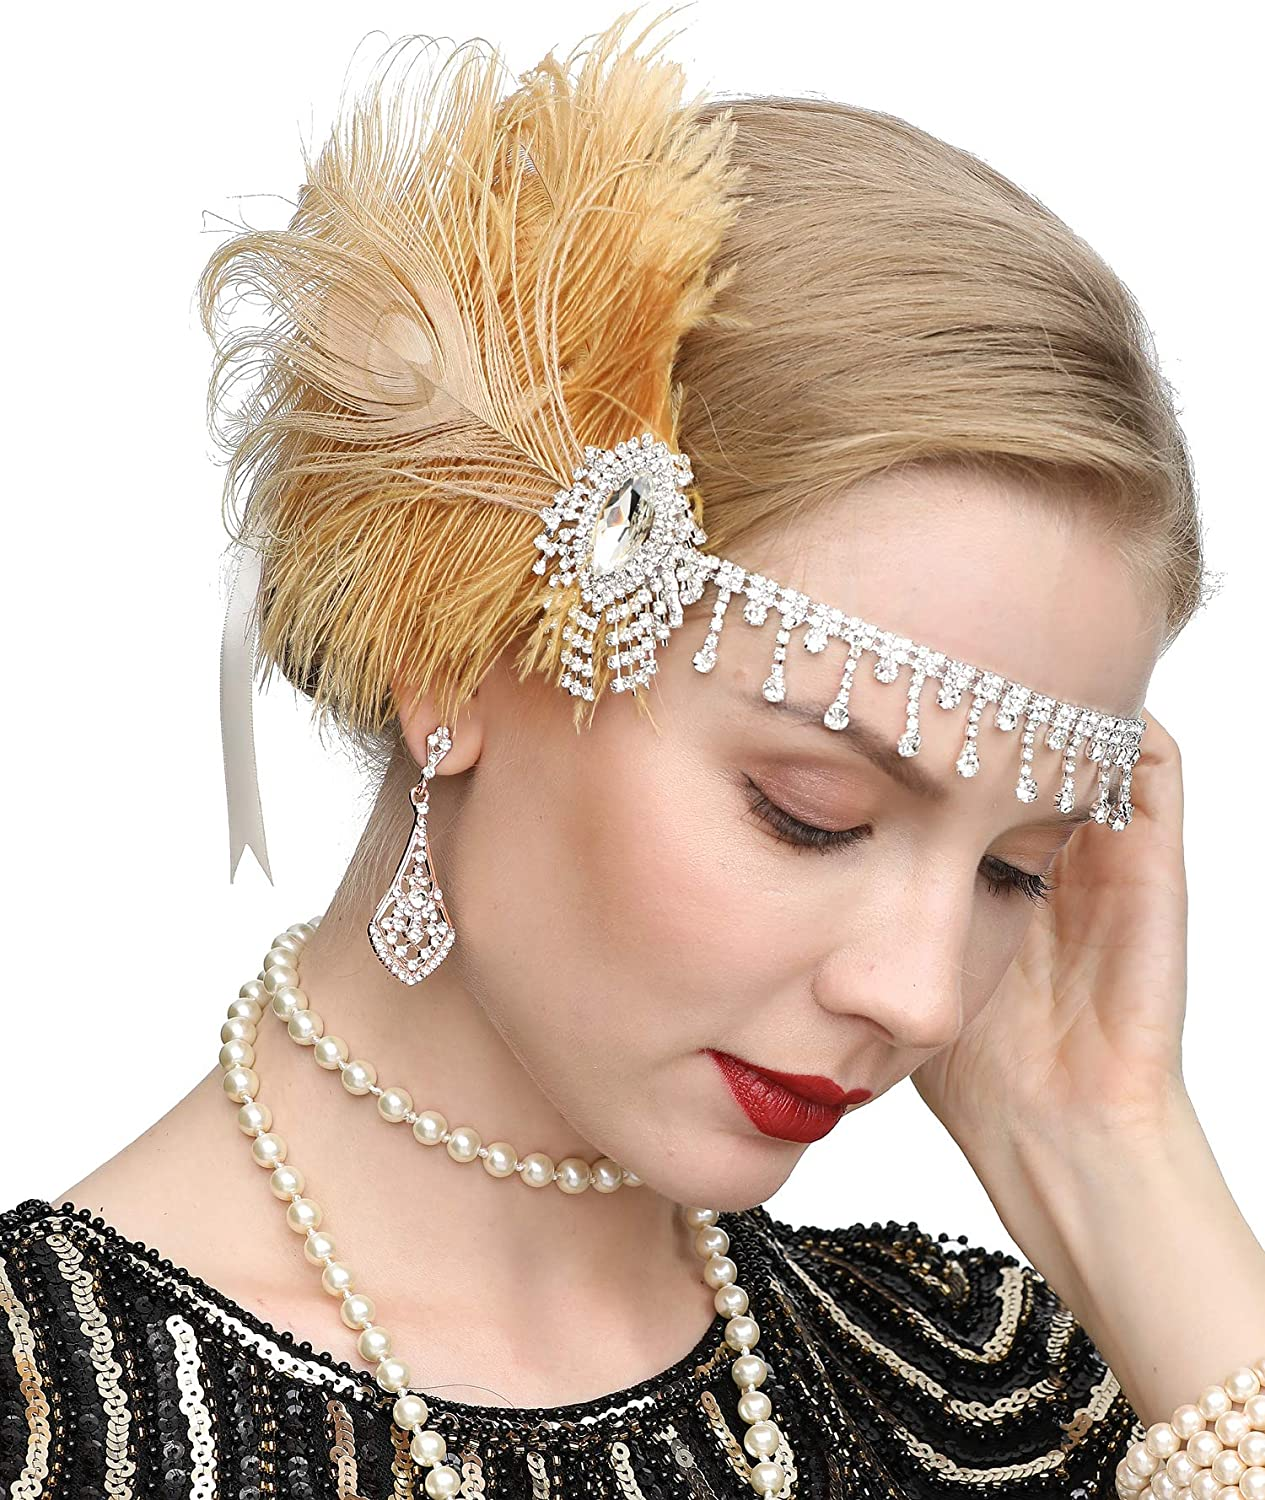 Art Deco 1920s Flapper Headpiece Roaring Gatsby Headpiece With Peacock Feather Headband 1920s Flapper Gatsby Accessories